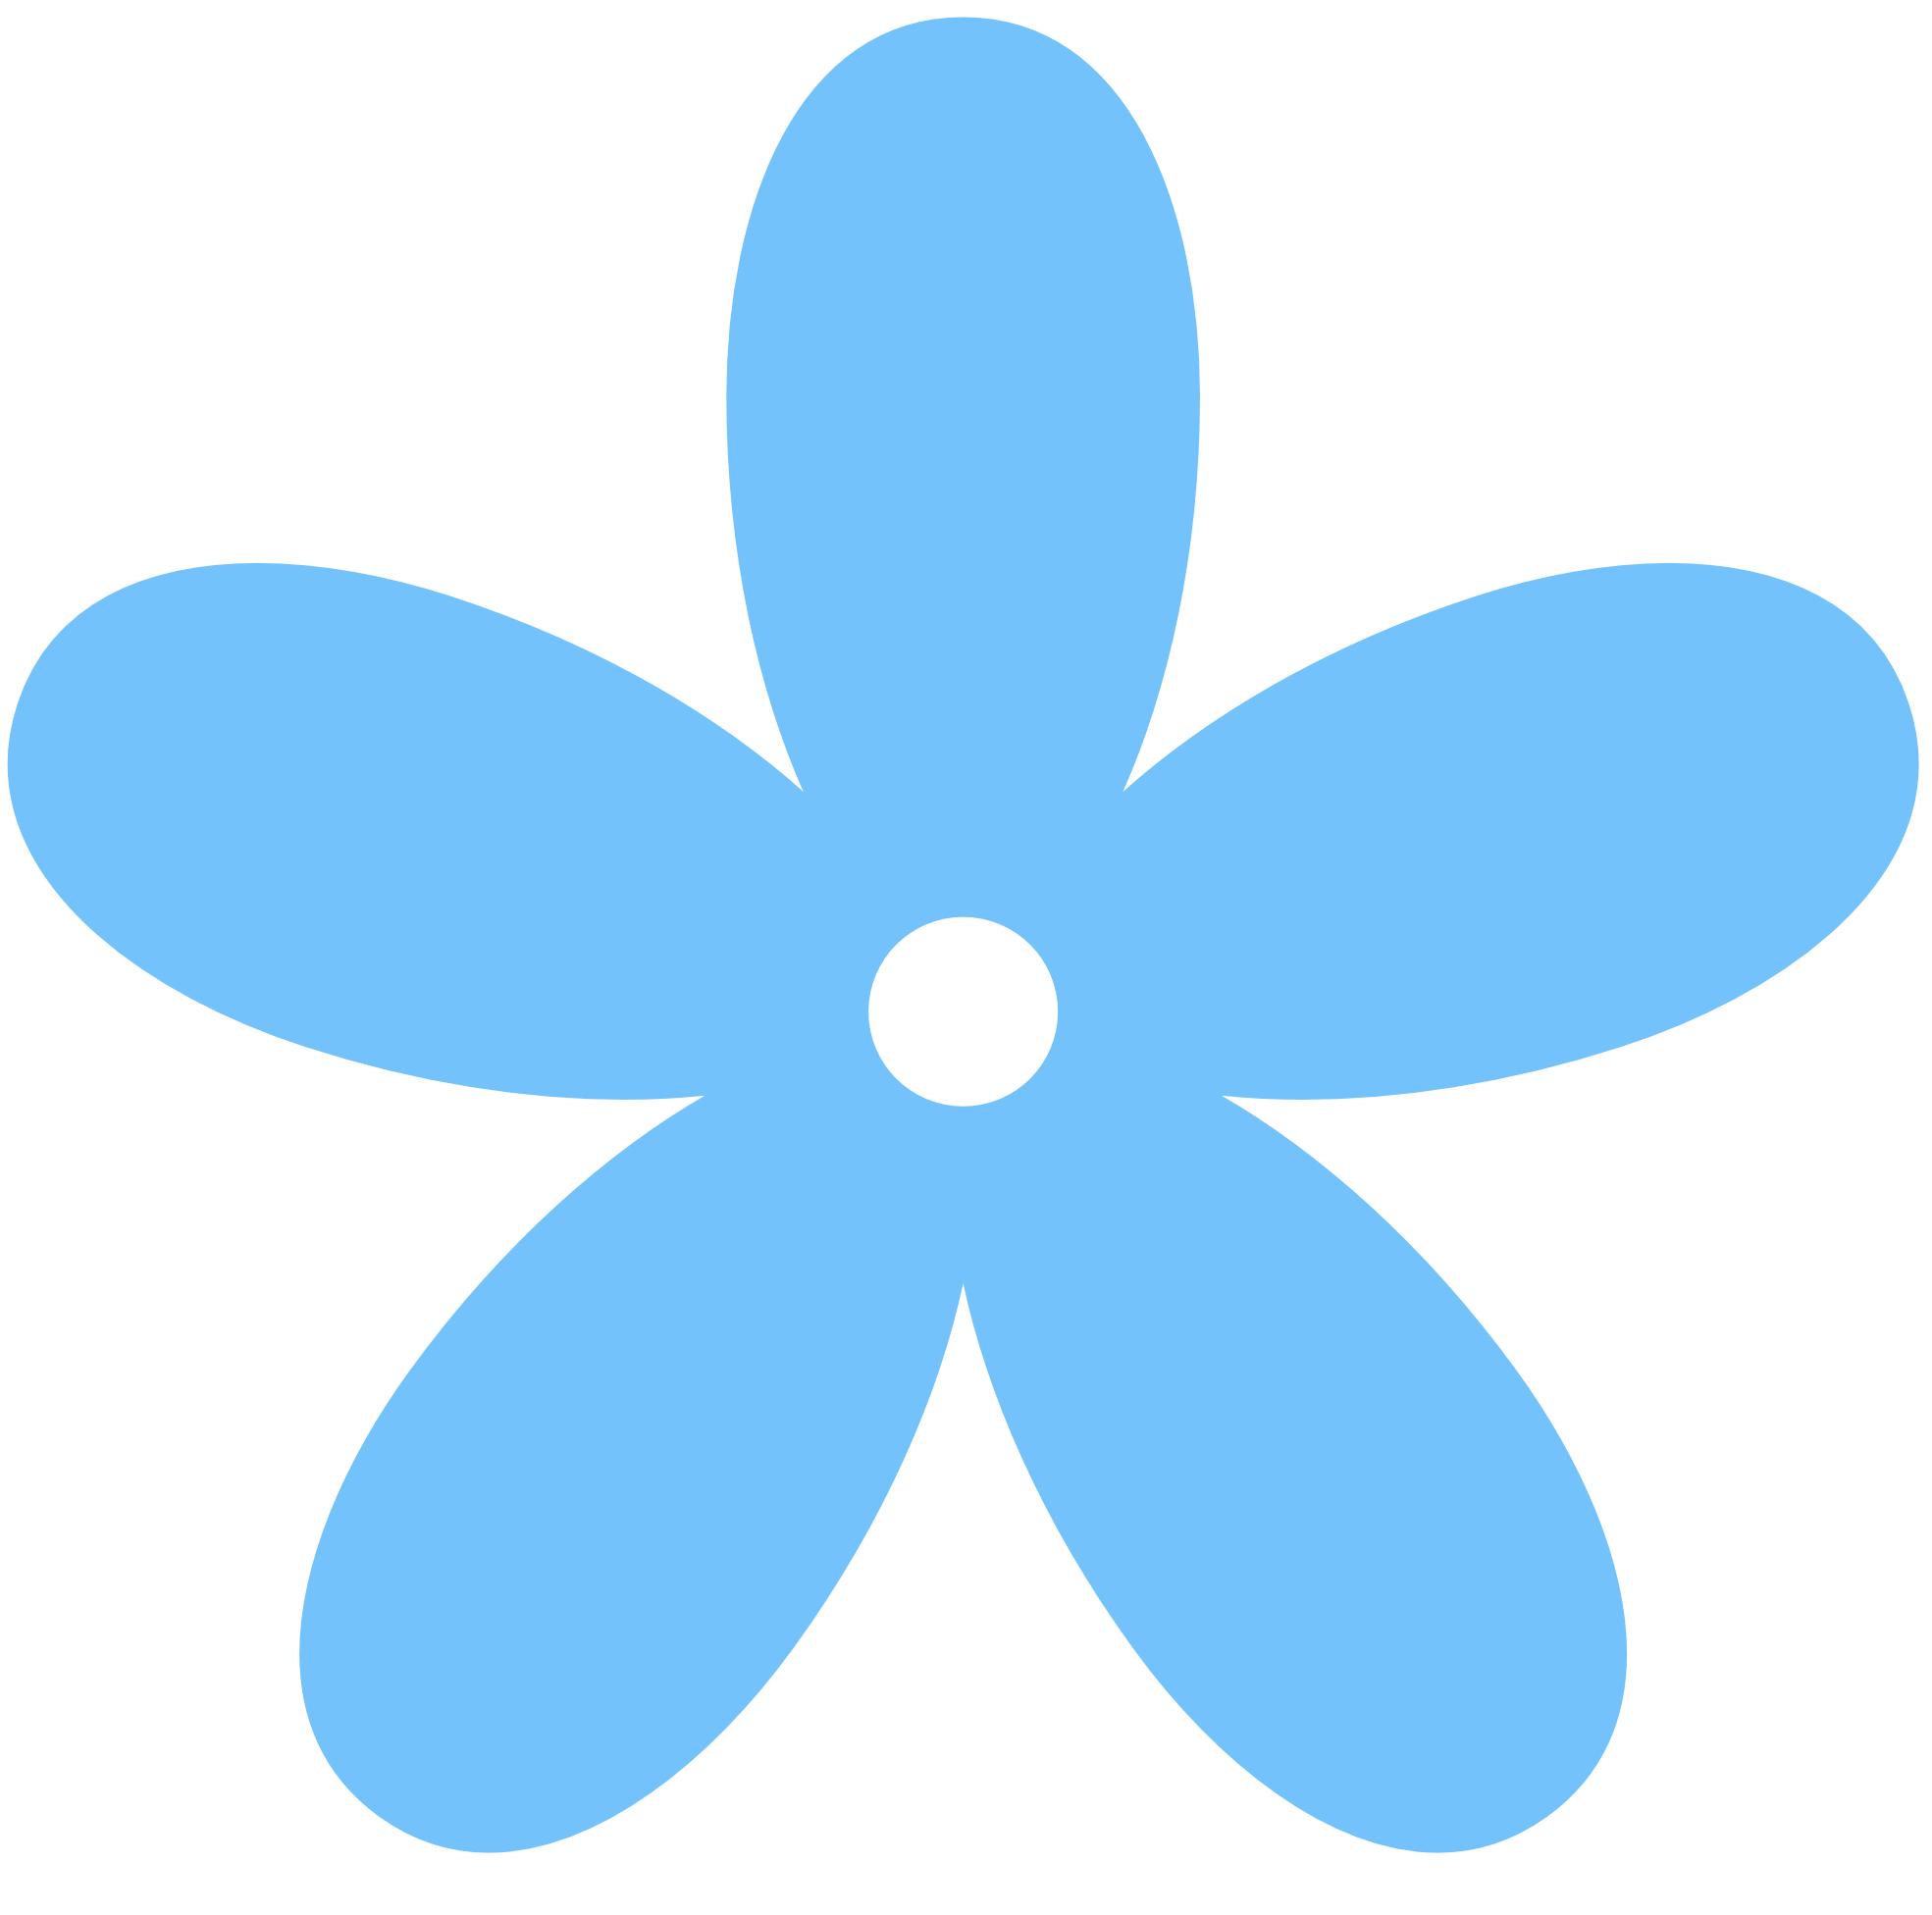 Blue color clipart: Retro Flower 8 Color Colour